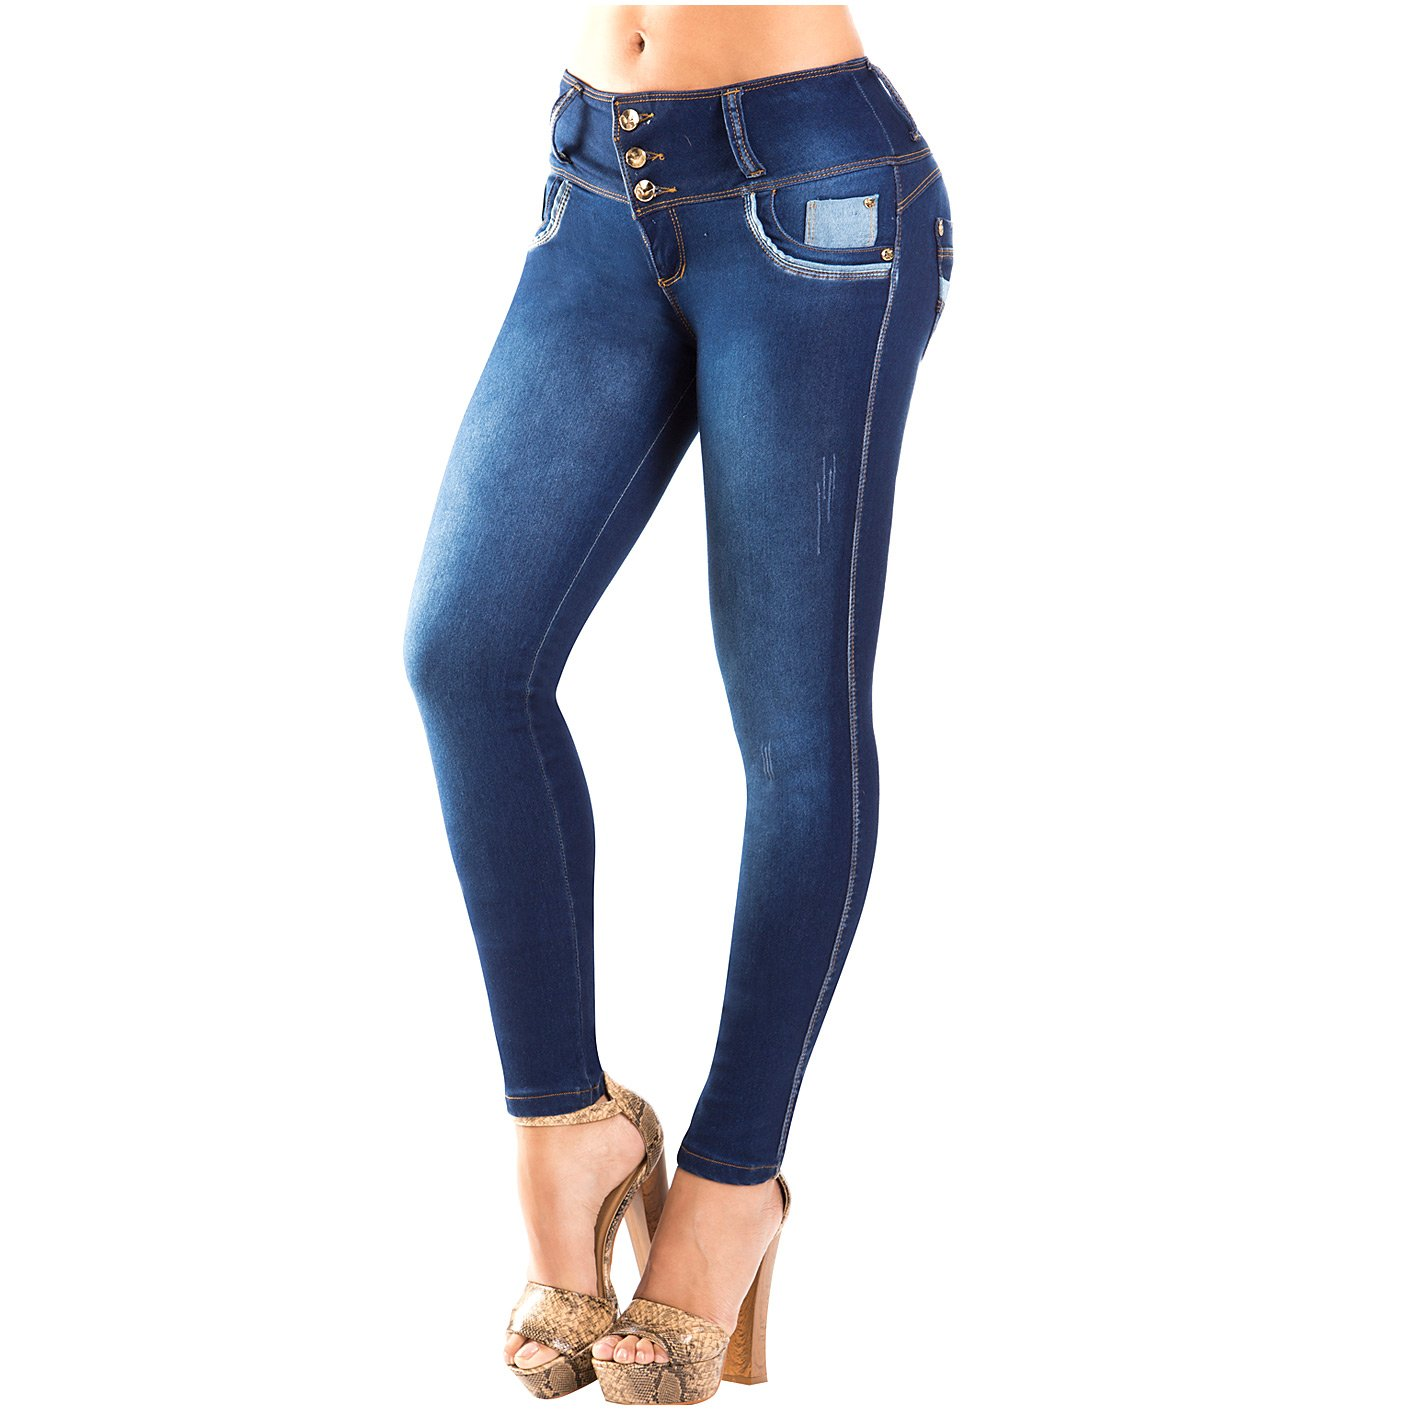 LTR CS3B06 Dark Skinny Jeans with Pocket Patch for Women